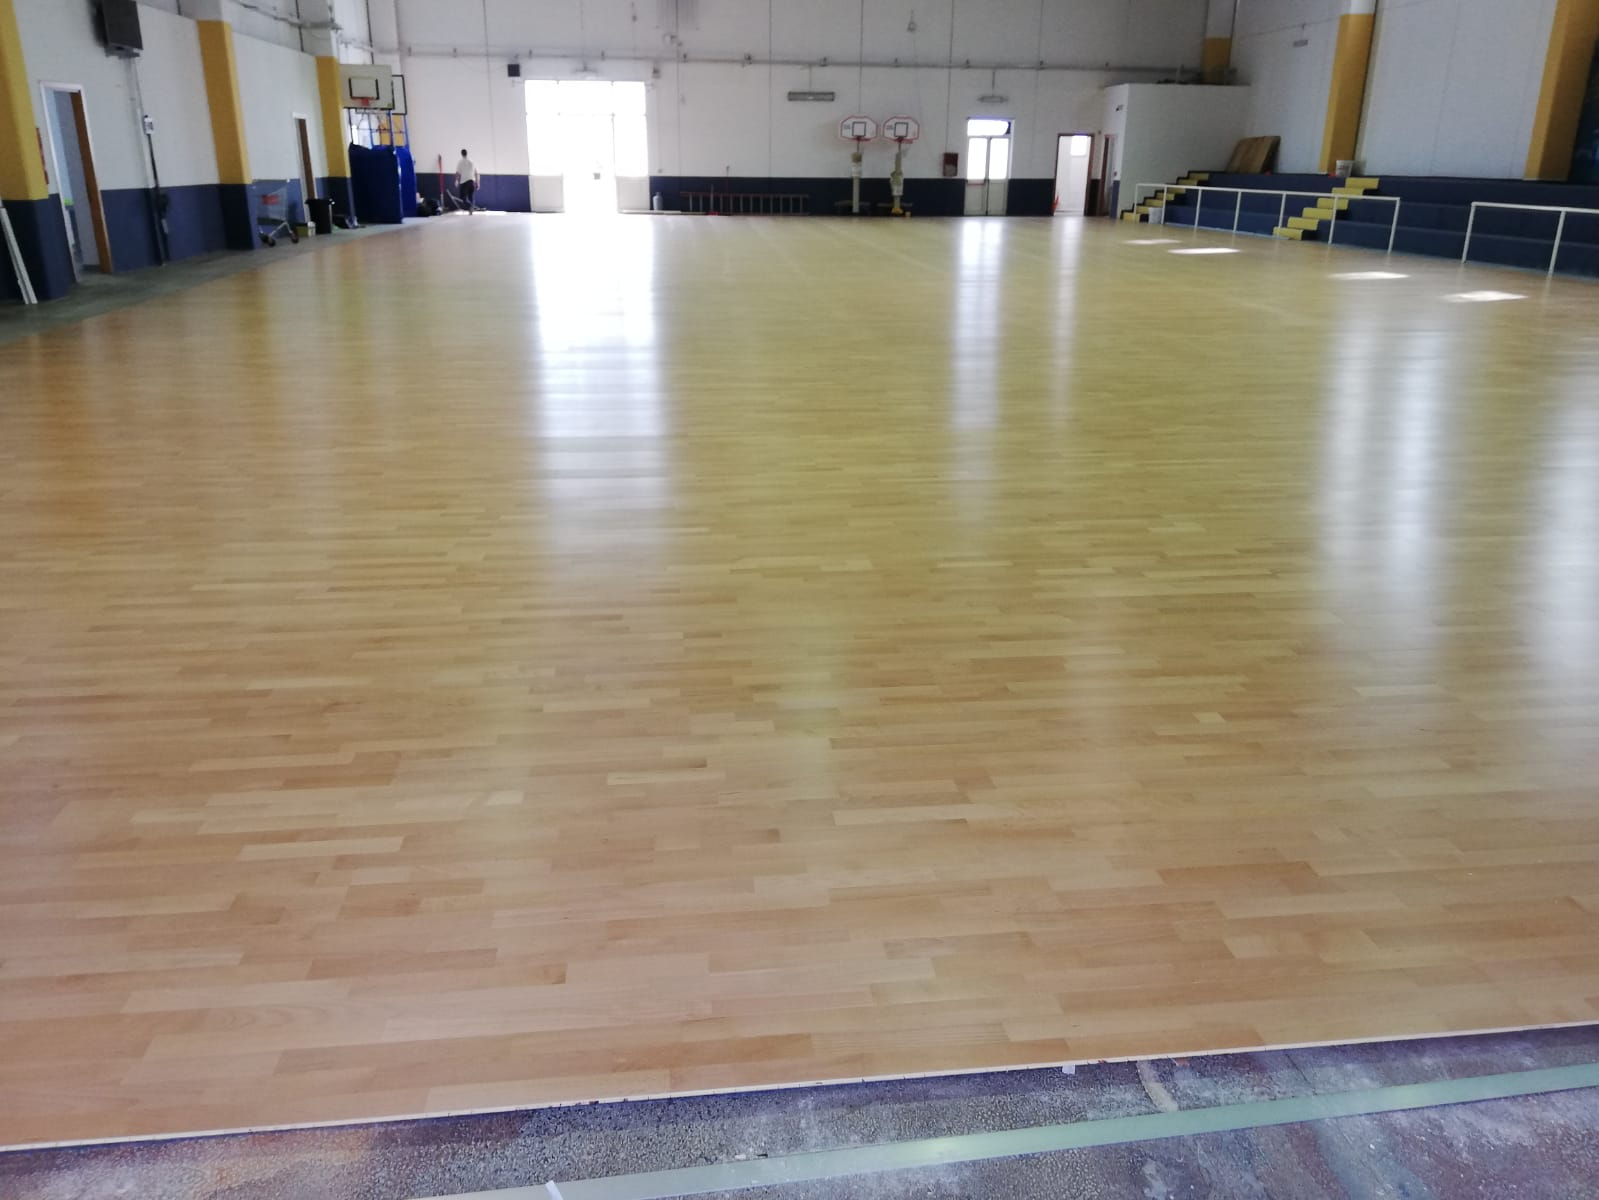 An oak flooring for local sports clubs